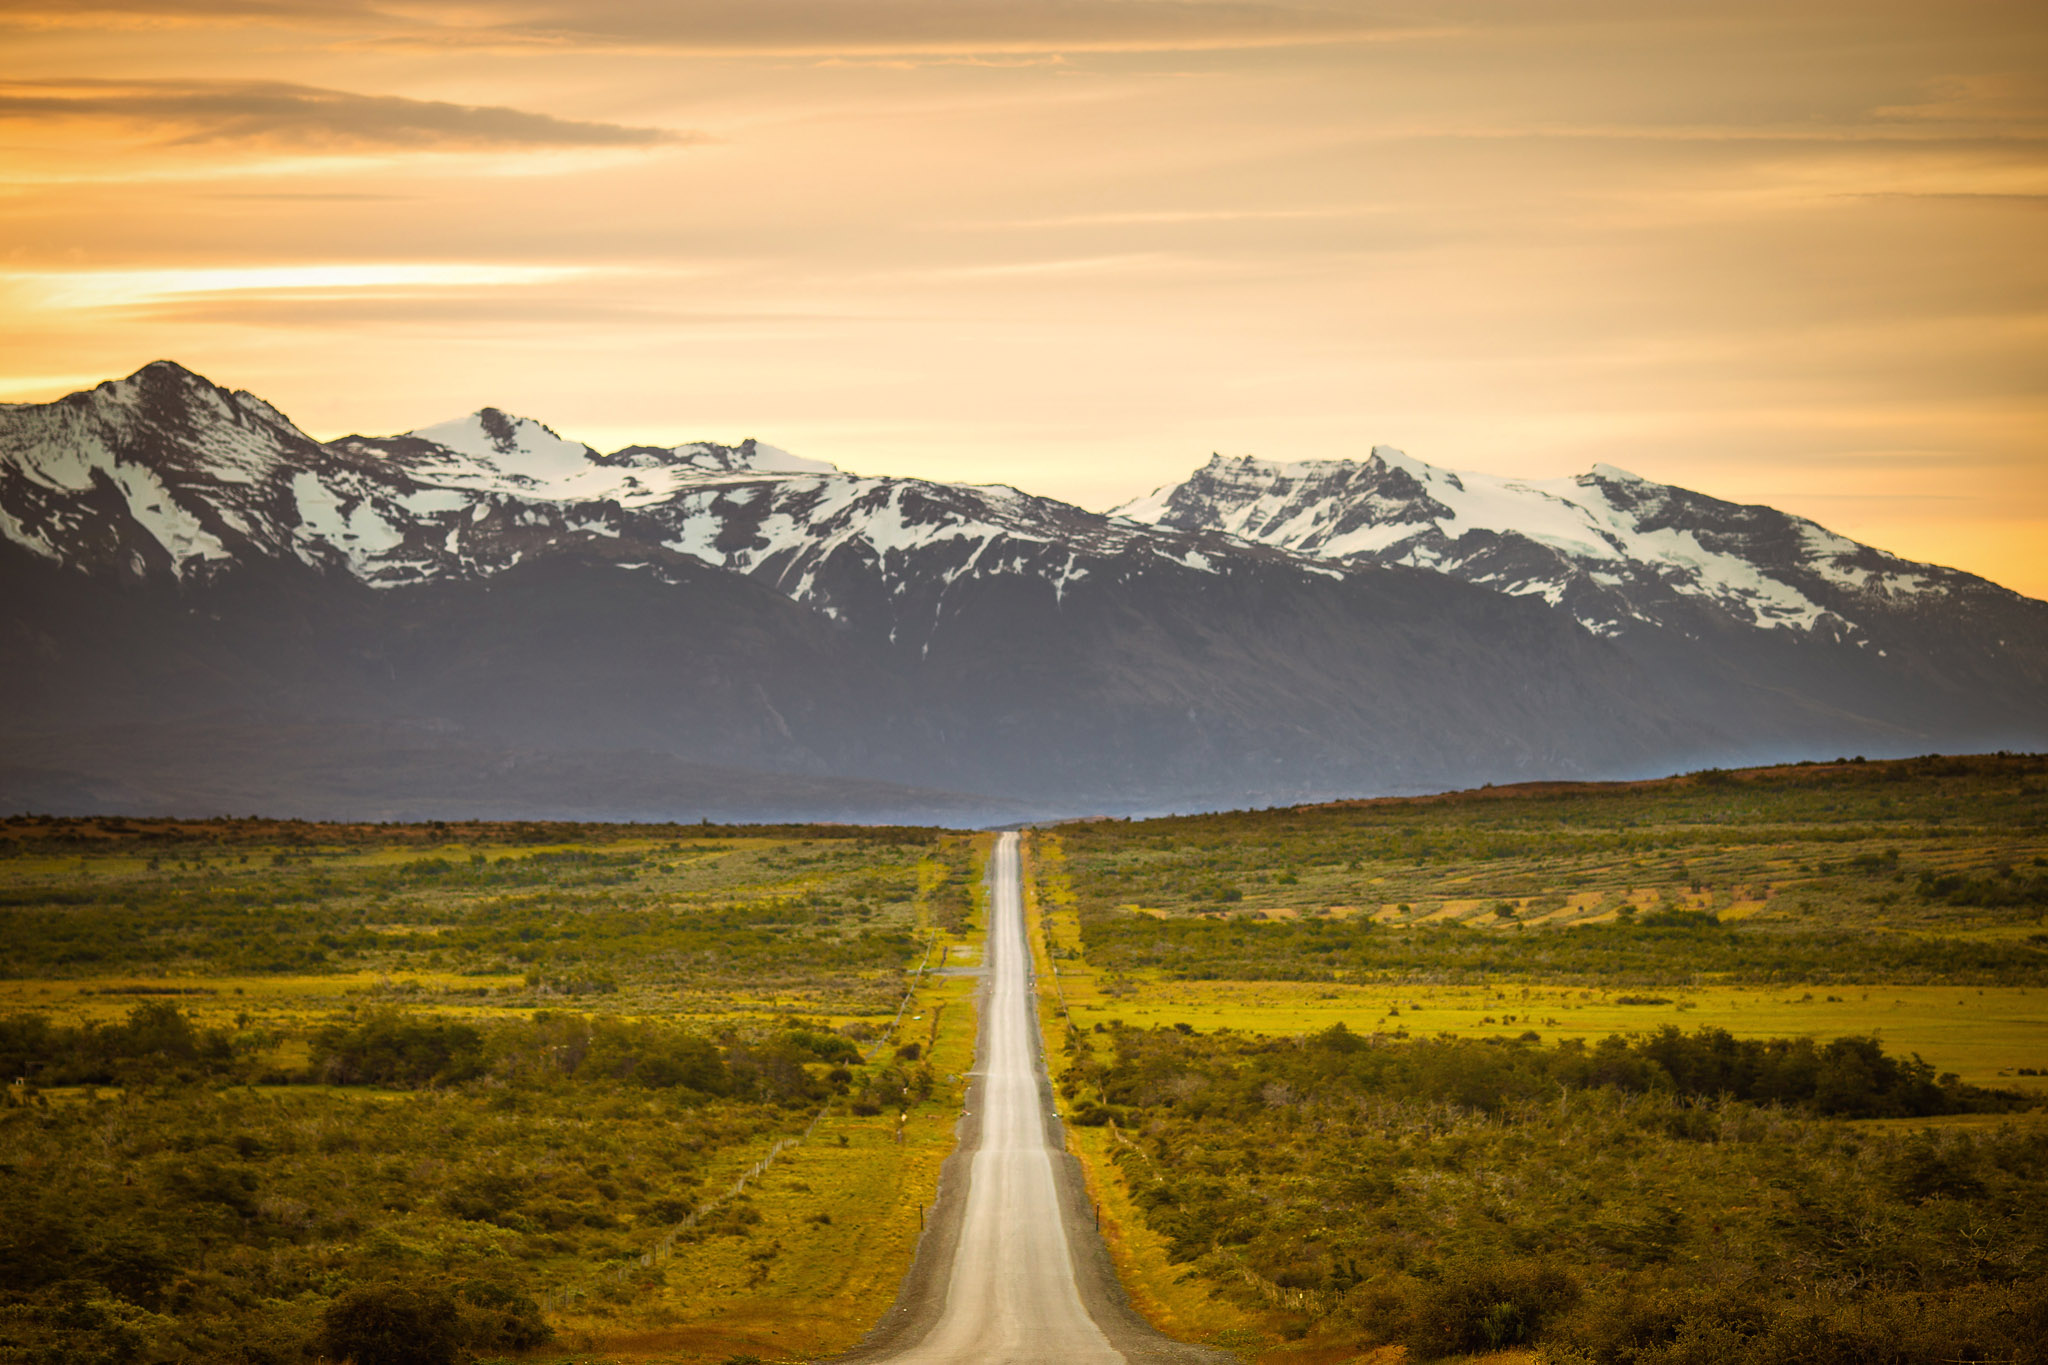 Wedding-Travellers-Overlanding-Destination-Wedding-Chile-Torres-del-Paine-sunset-snow-ice-mountain-glacial-road